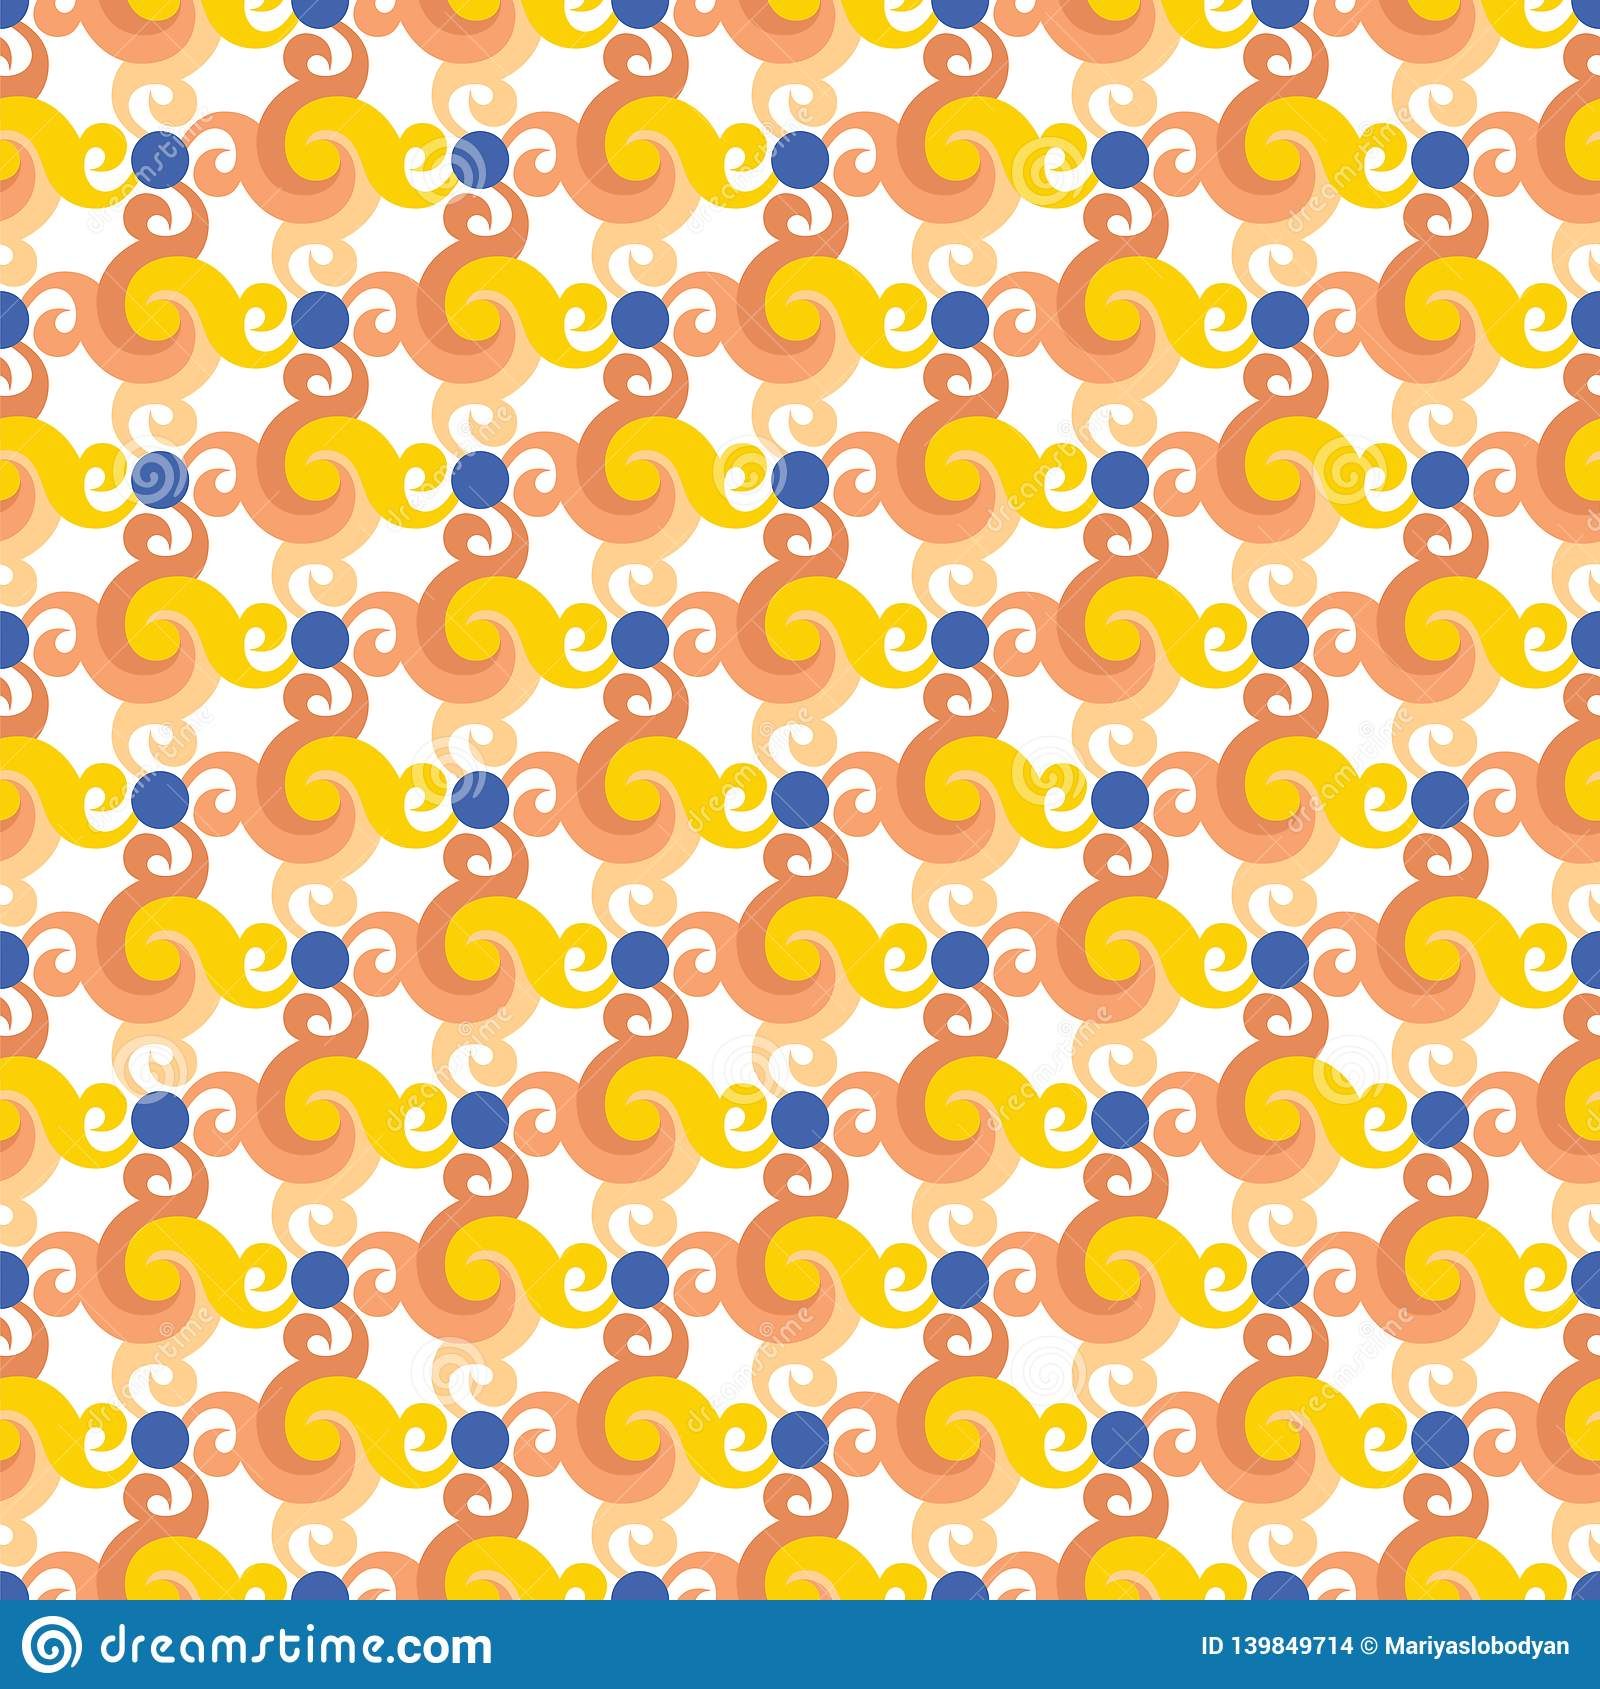 Abstract seamless pattern with swirls or twist, leaves and blue dots.